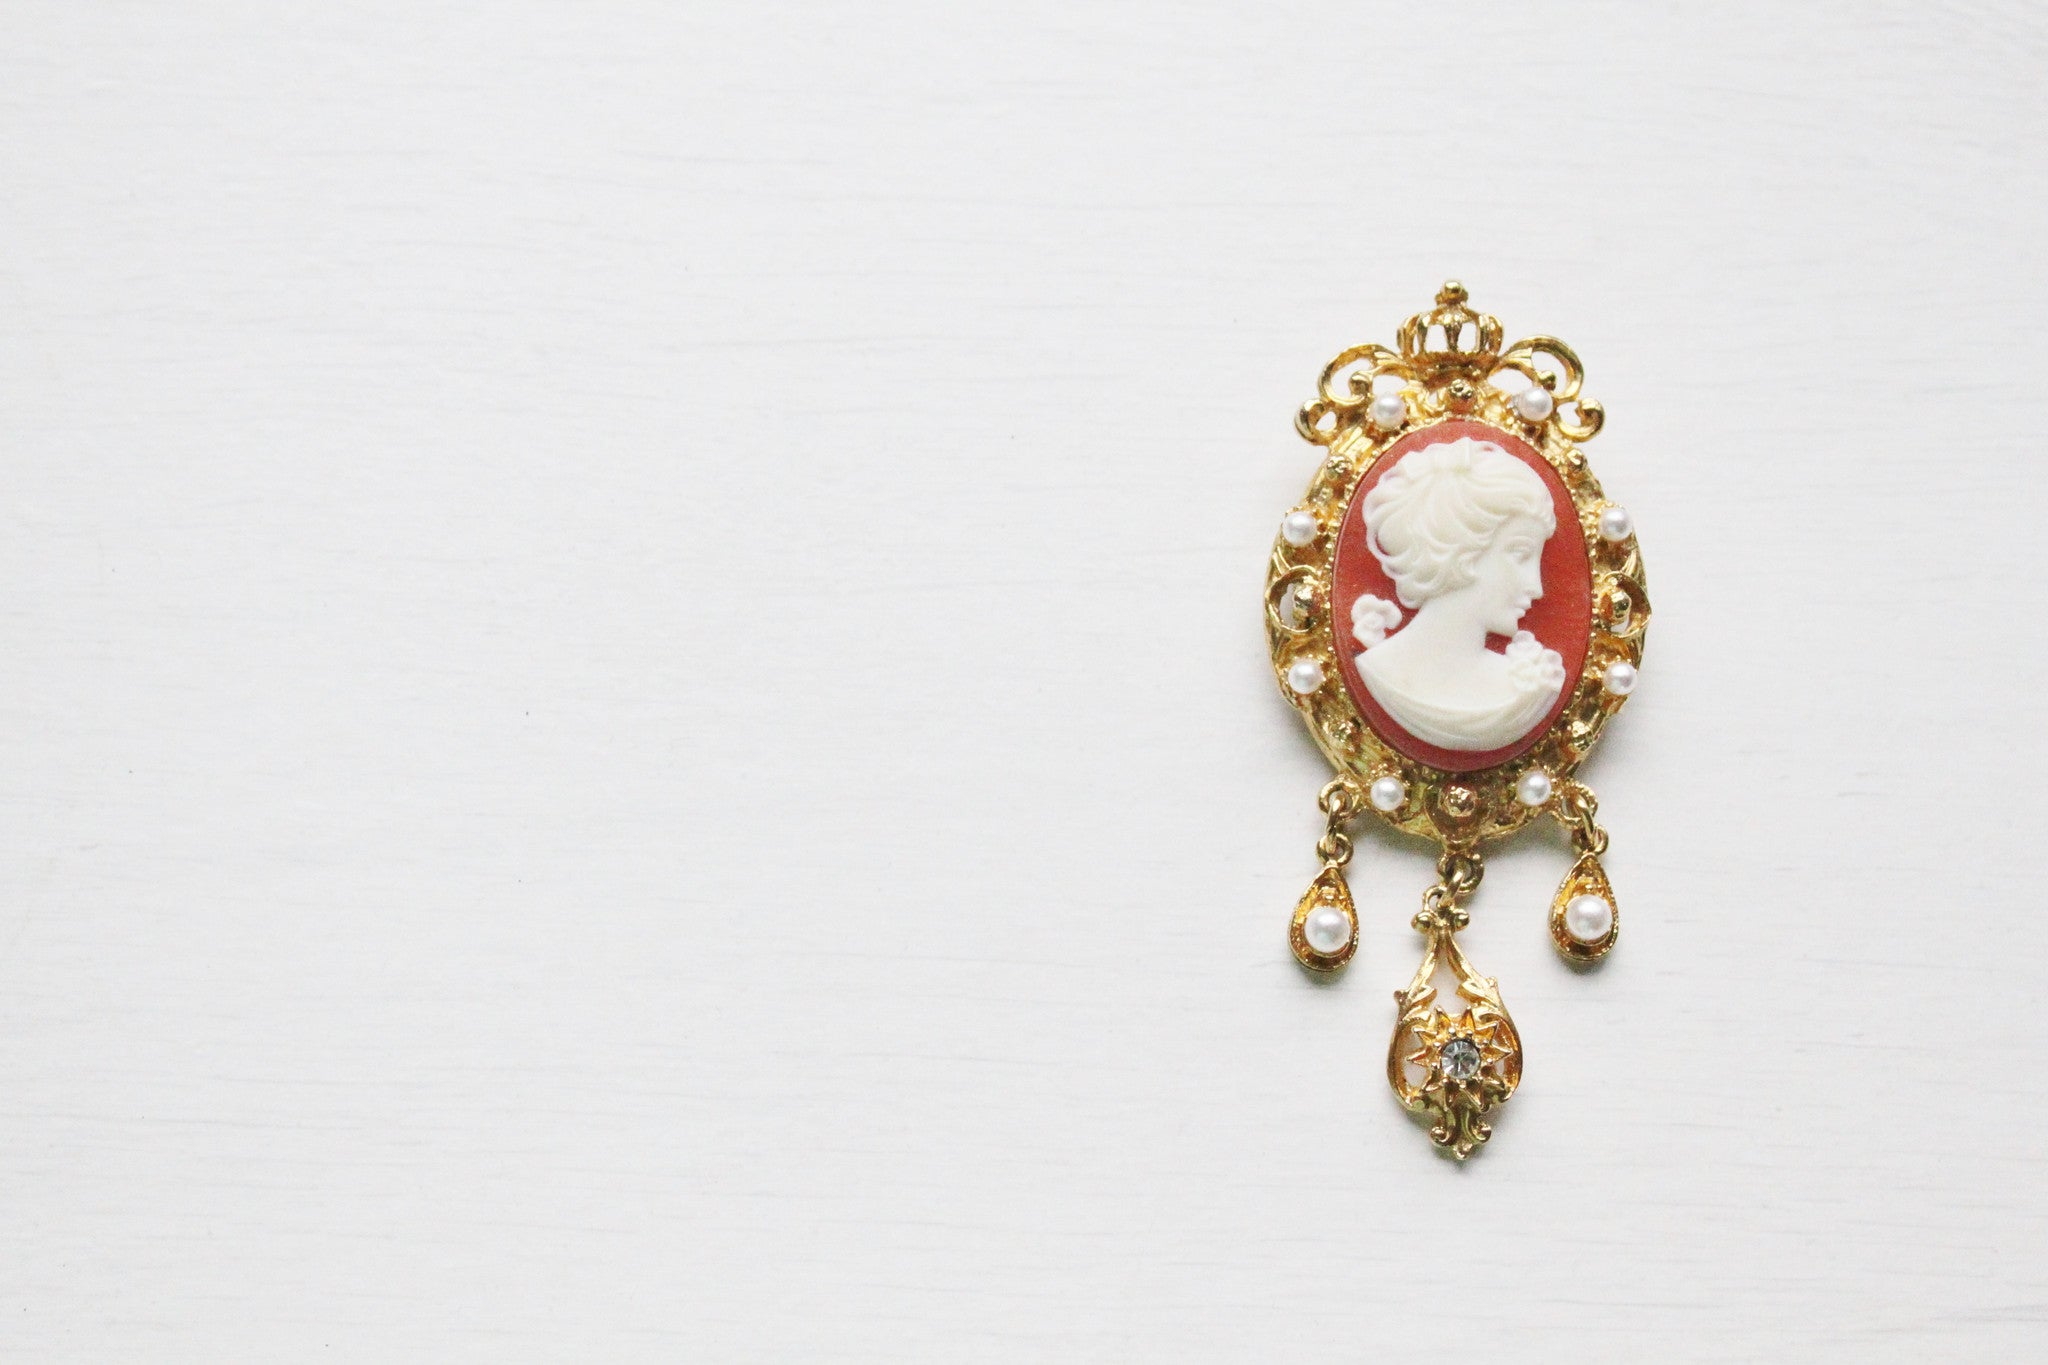 1950s Portrait of a Lady Victorian Style Cameo Brooch